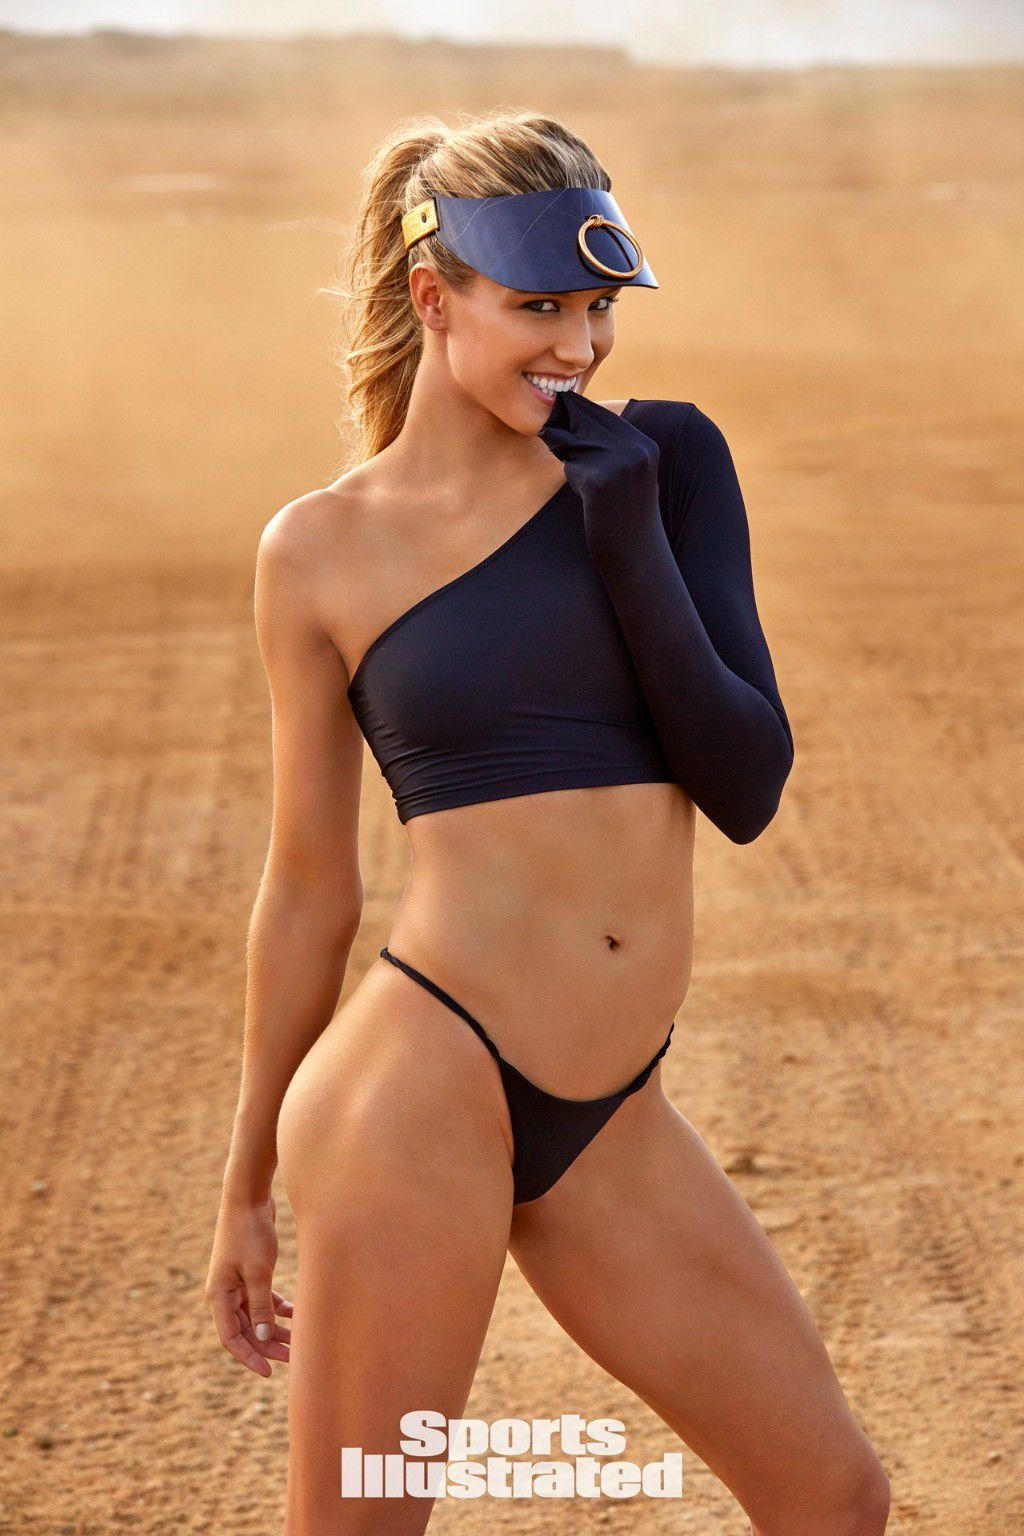 eugenie-bouchard-super-sexy-in-sports-illustrated-swimsuit-issue-2018-9